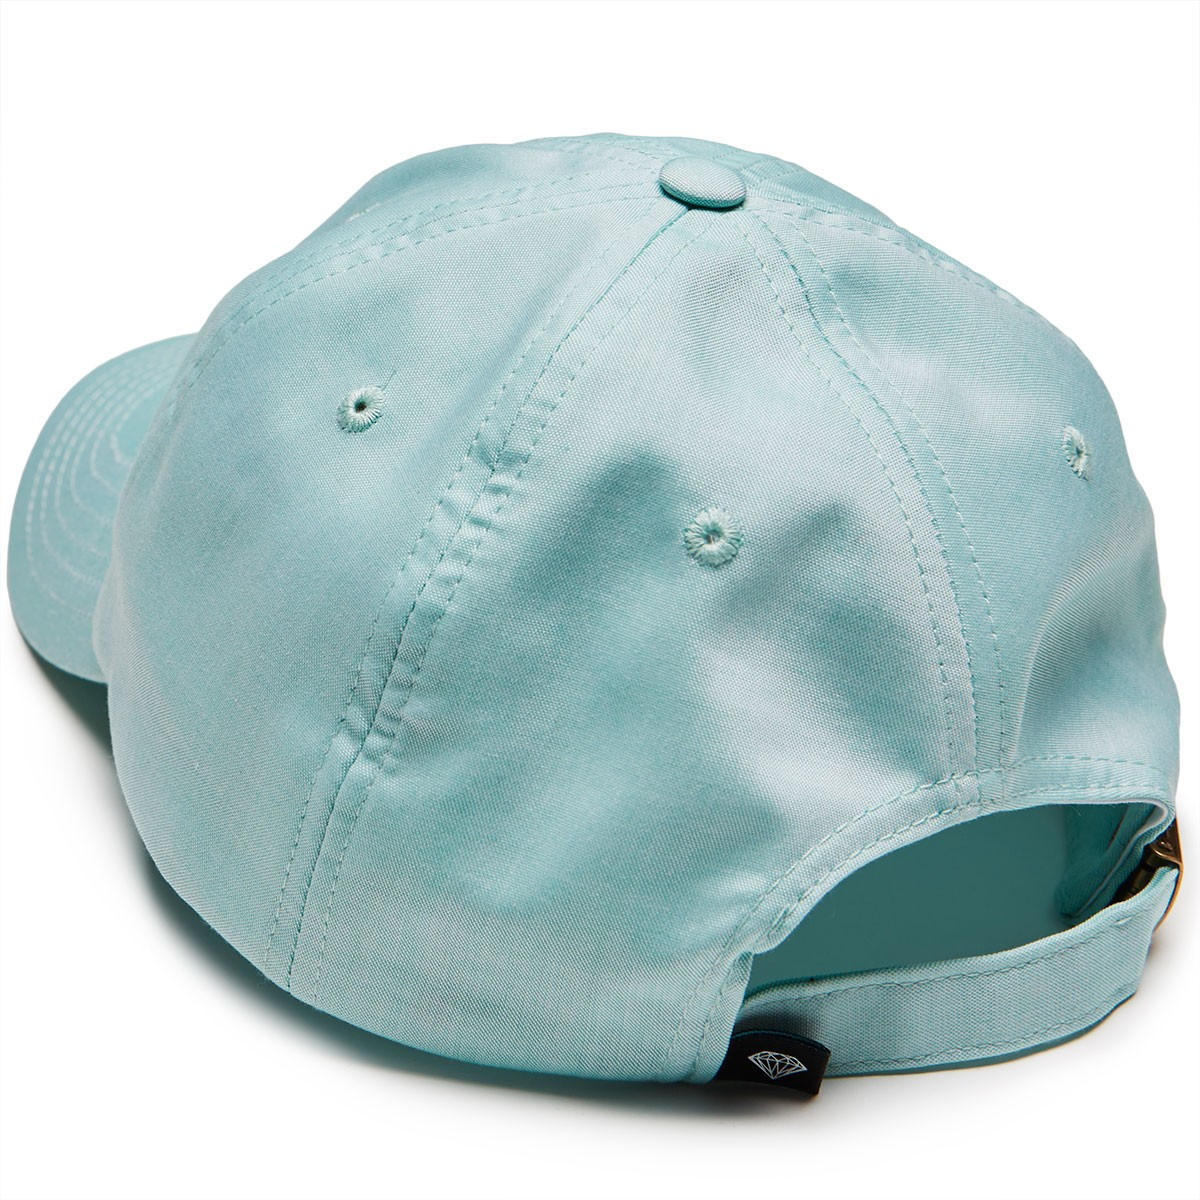 b2d758fbf9943 ... where to buy diamond supply co. micro brilliant sports trucker hat  diamond blue 3cd10 74547 ...